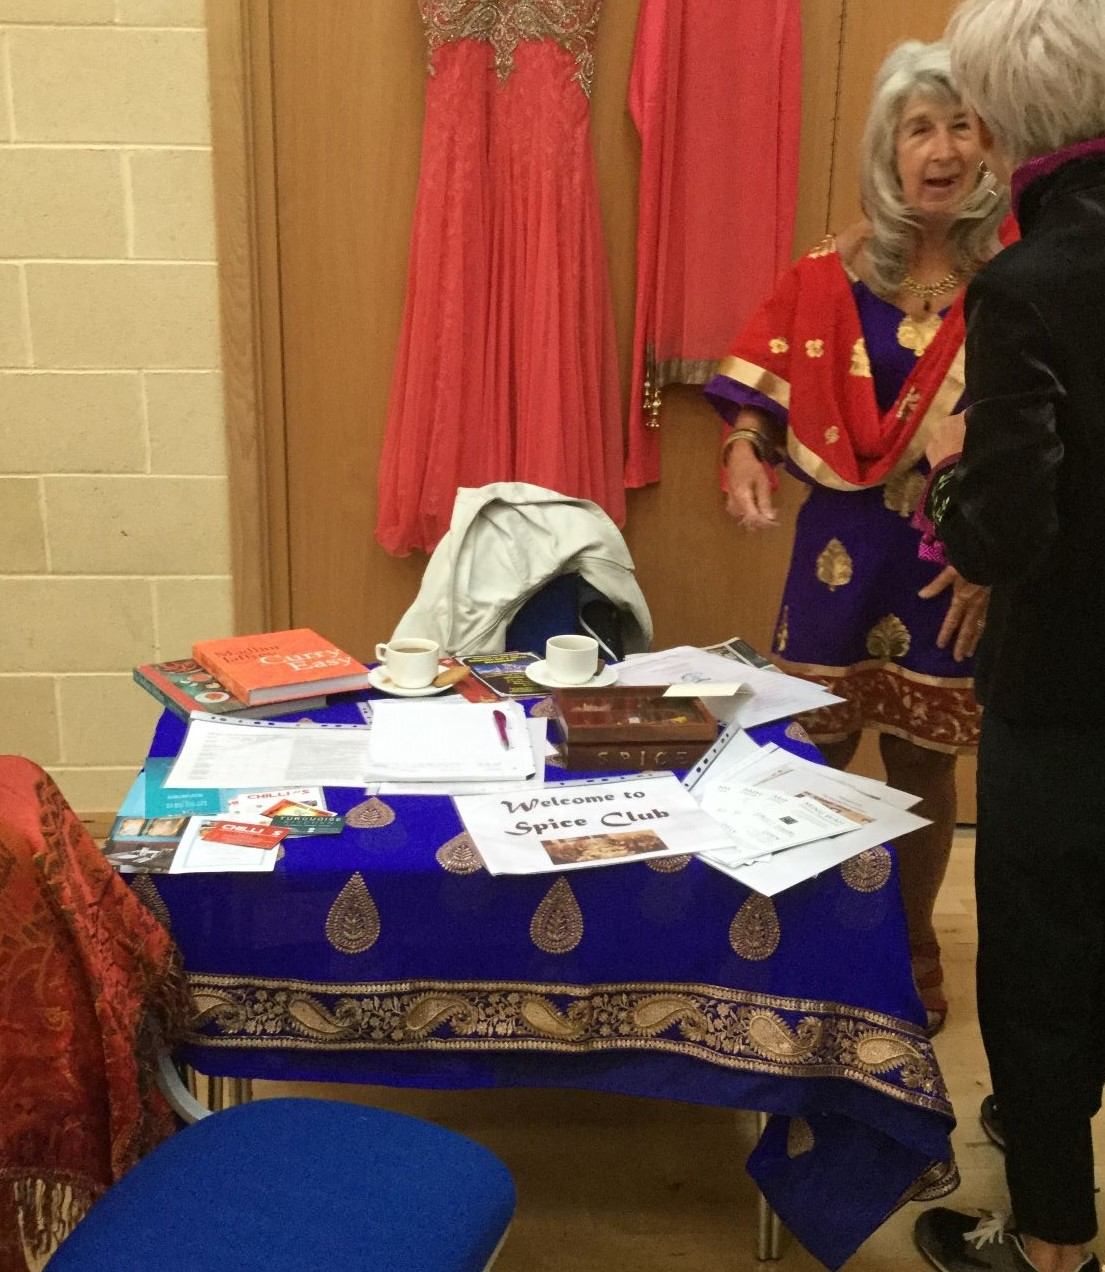 At our Table Fair July 2019